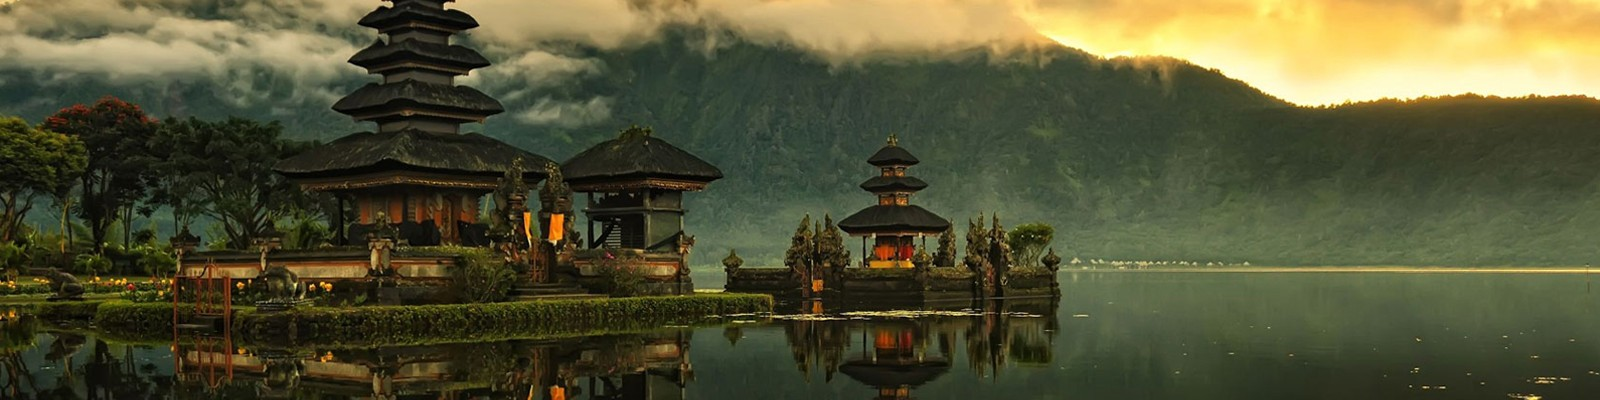 Bali-luxury holidays -Header